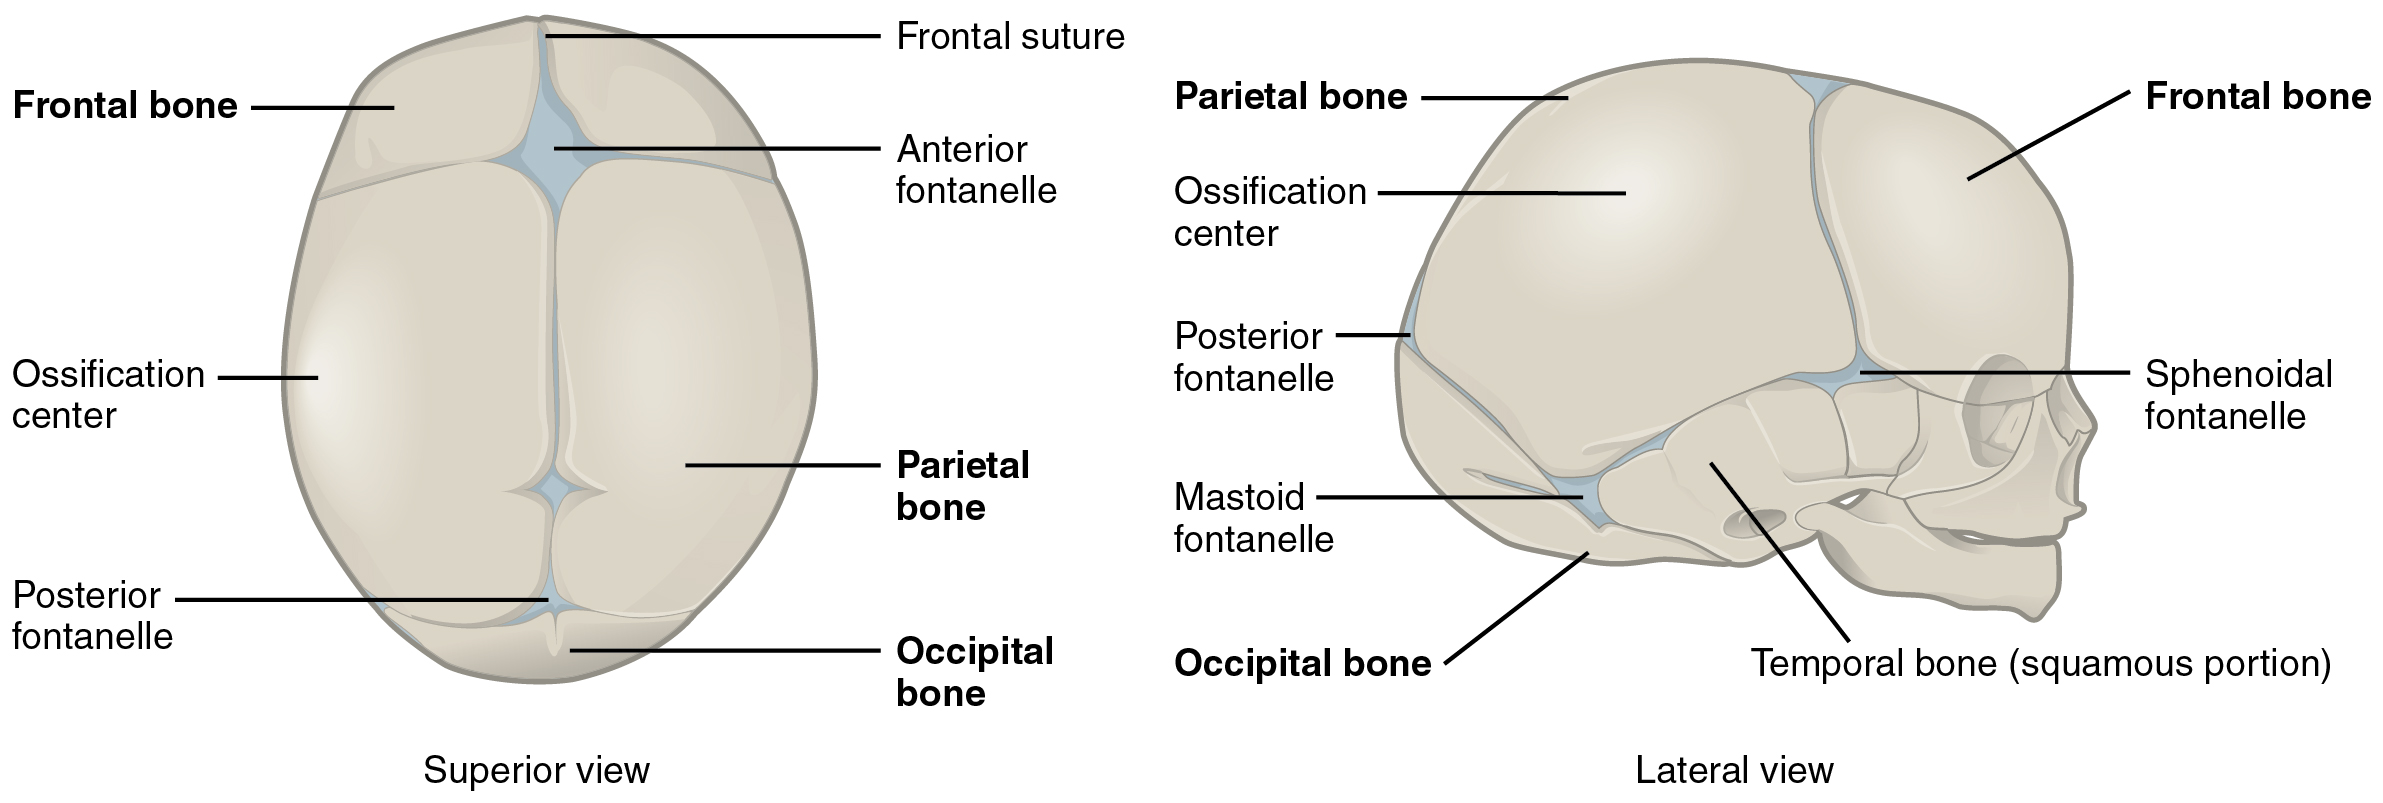 Embryonic Development Of The Axial Skeleton  U00b7 Anatomy And